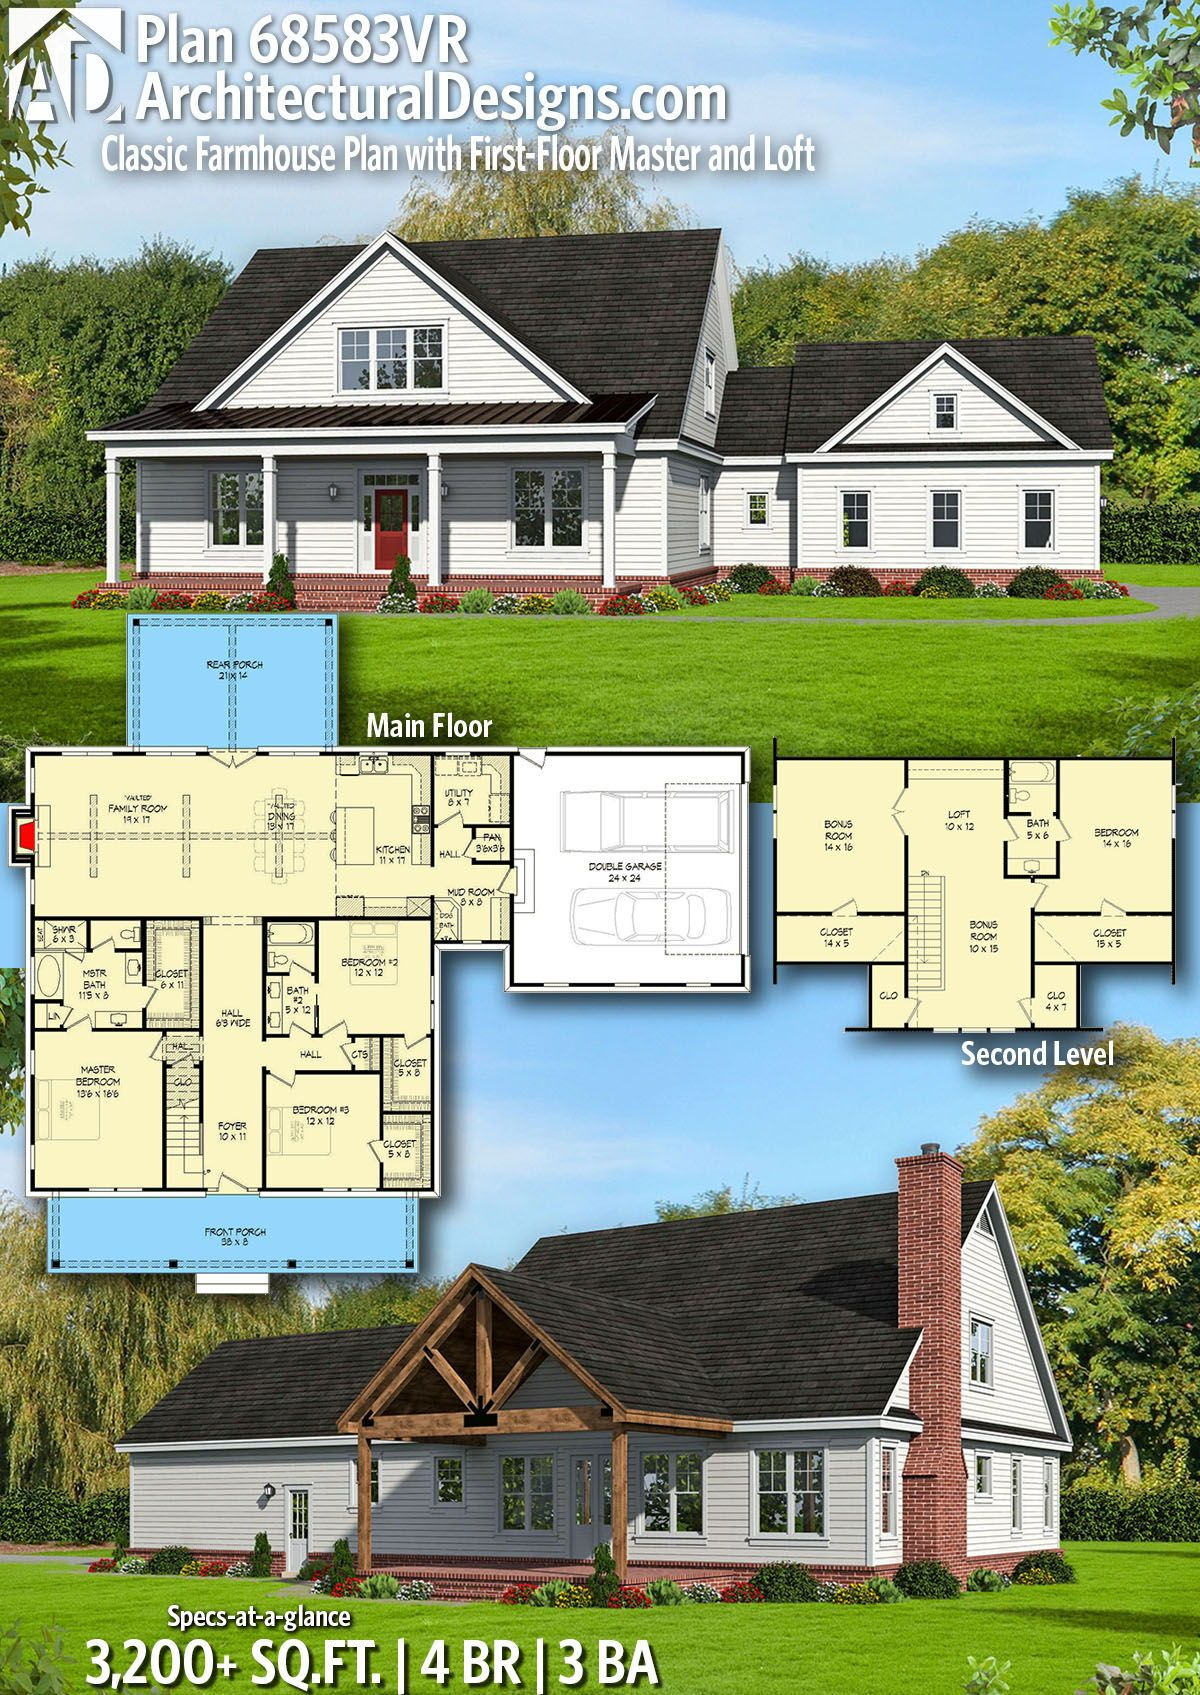 Plan 68583vr Classic Farmhouse Plan With First Floor